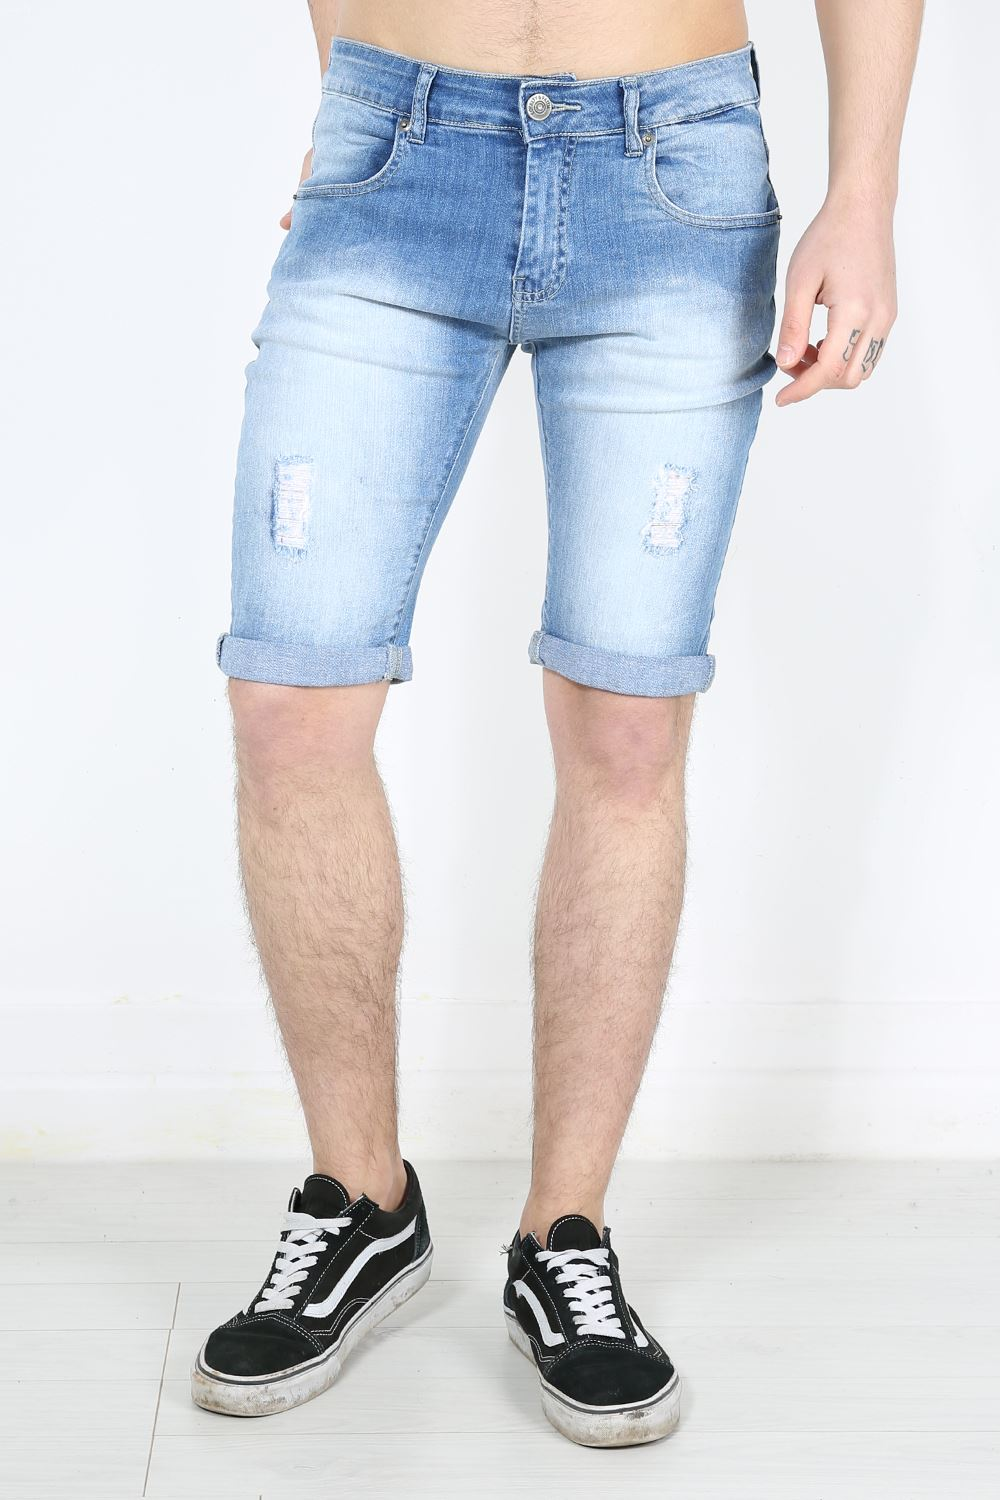 Express offers a variety of men's shorts! Shop our collection of slim shorts, cargo shorts, drawstring and jean shorts for men. Skip to Main Content Skip to Skinny Jeans Slim Jeans Slim Straight Jeans.